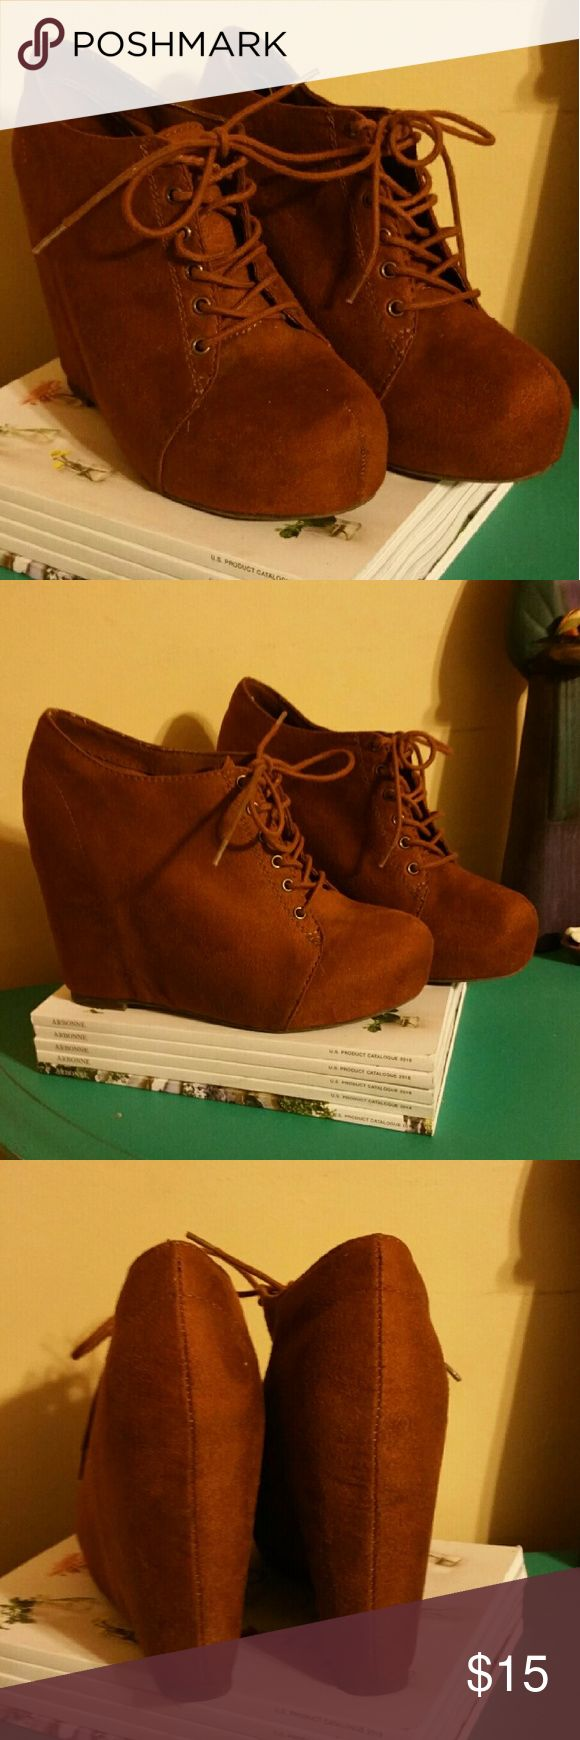 Brown Bootie Boot Super cute Brown bootie boot.  Great condition. Shoes Ankle Boots & Booties